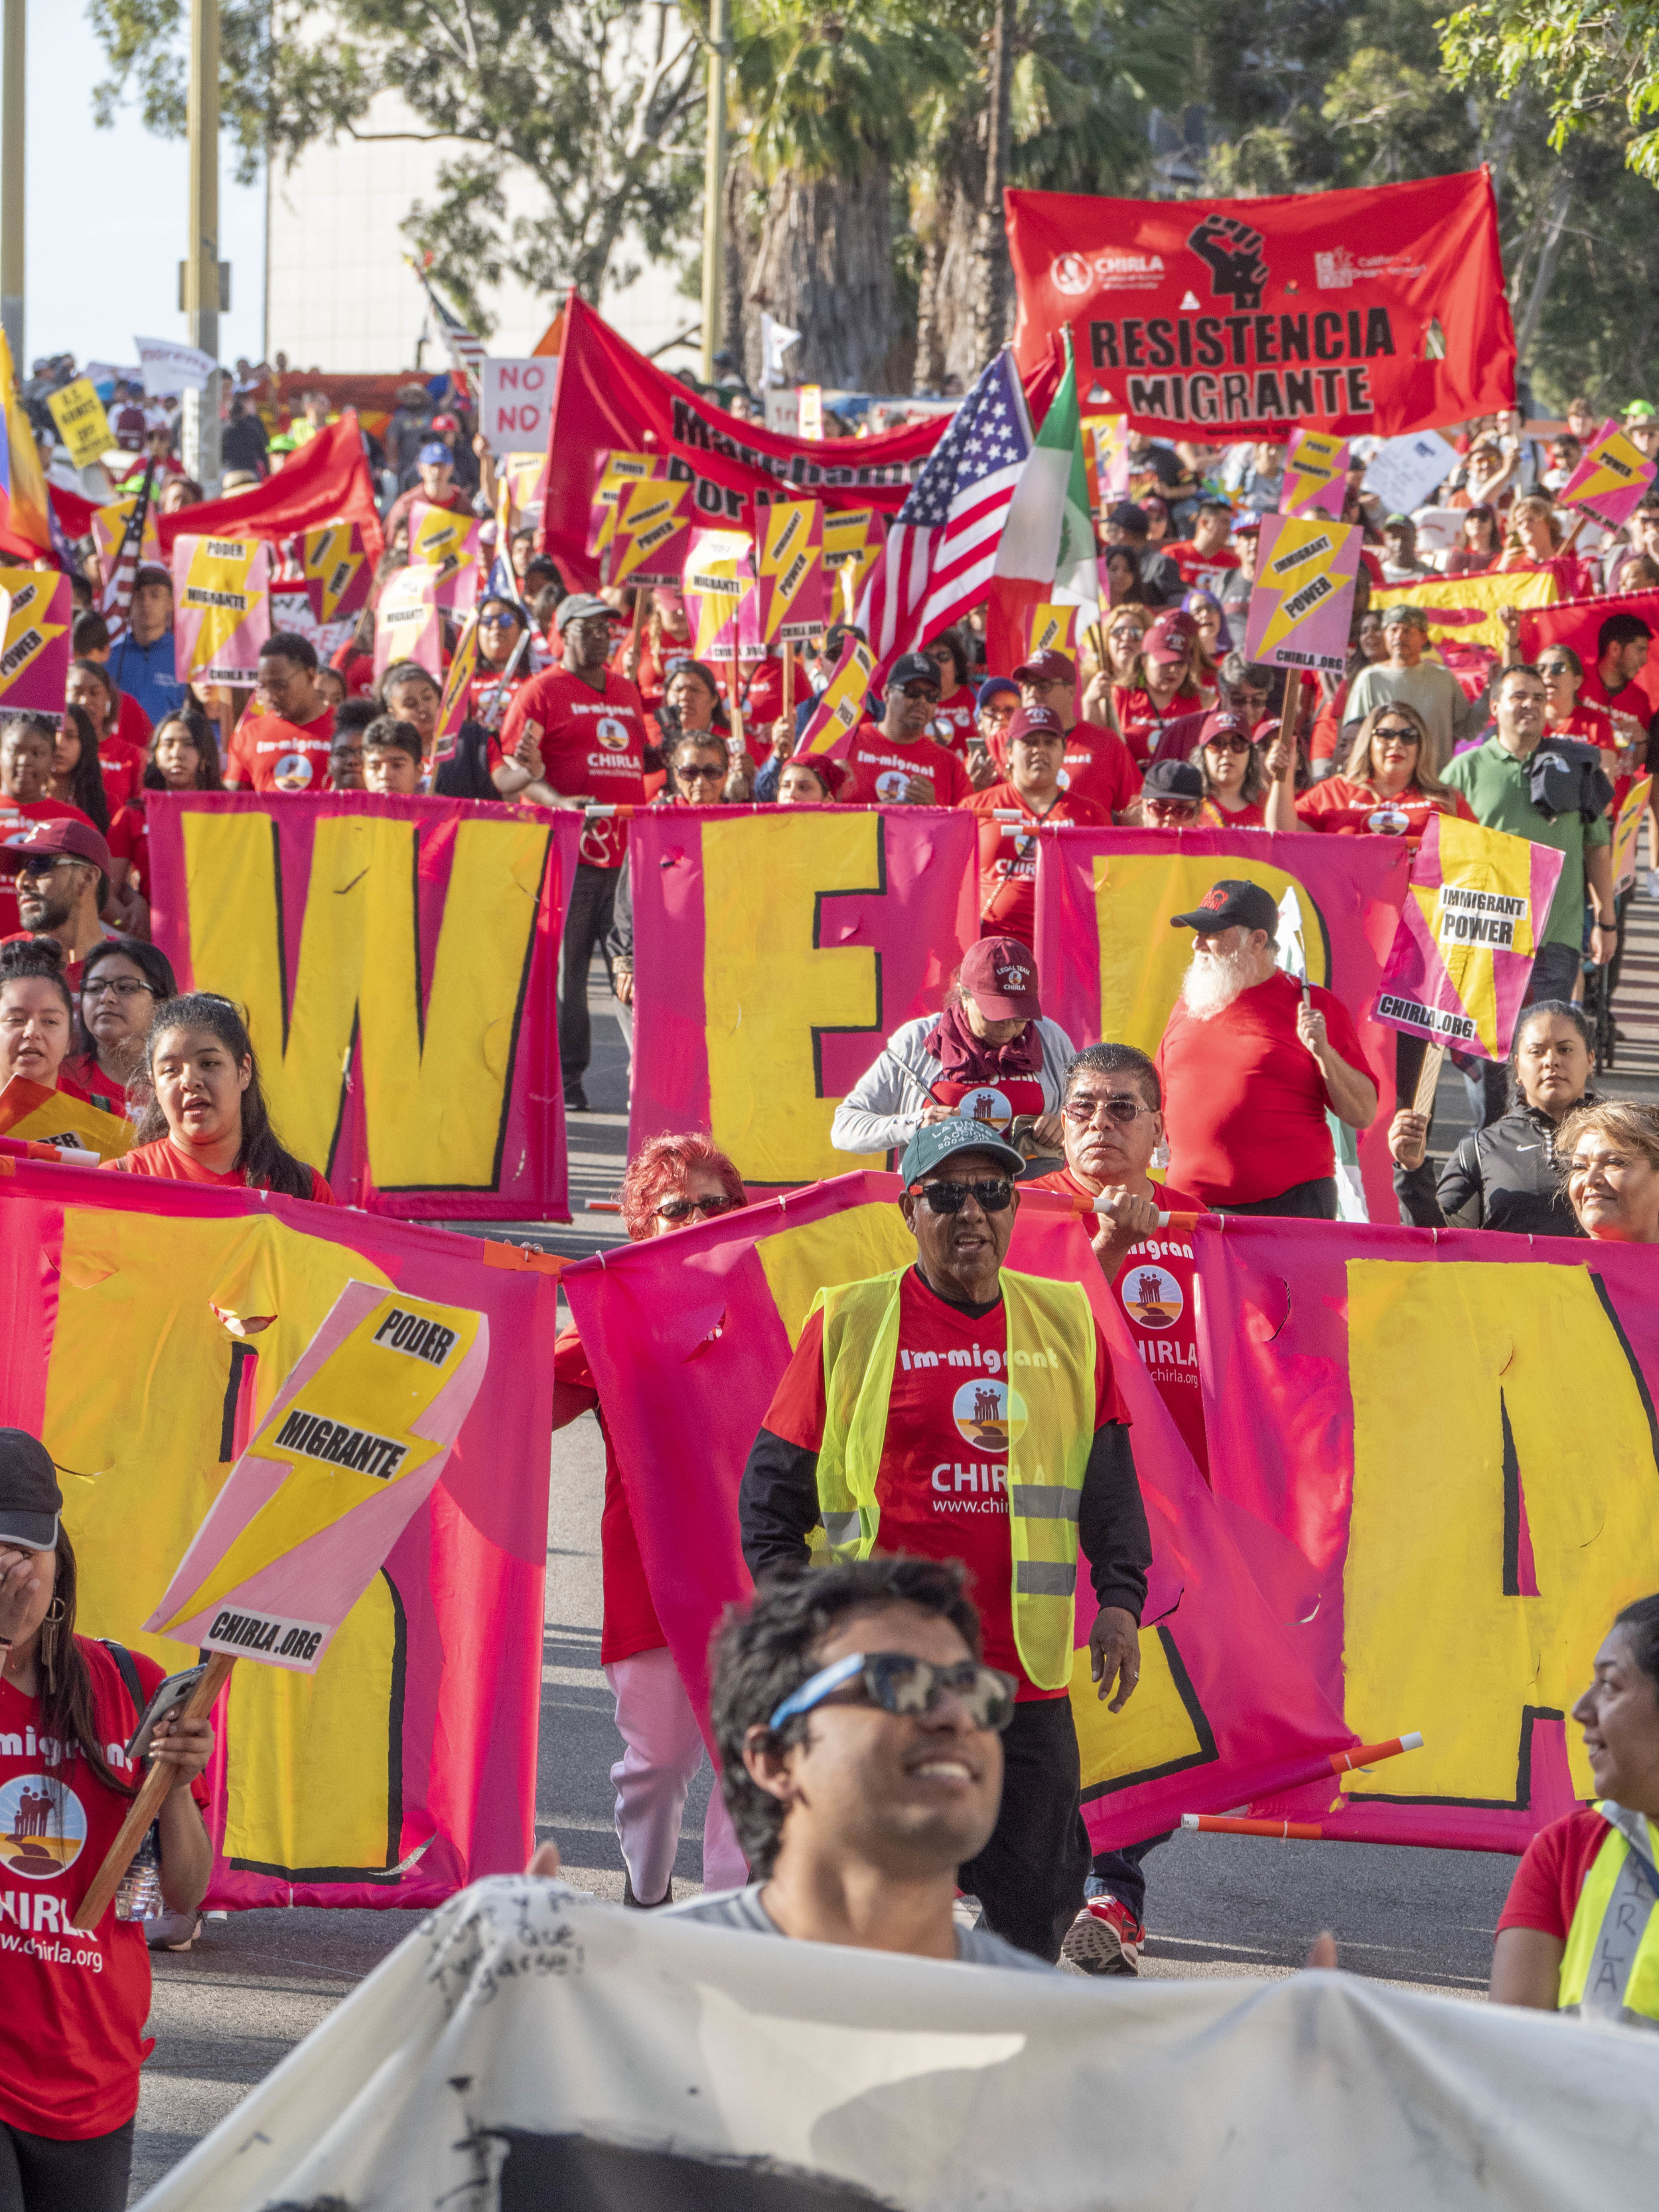 Marchers at the May Day March from MacArthur Park to City Hall on Wednesday, May 1, 2019, Los Angeles California. (Victor Noerdlinger/Corsair)